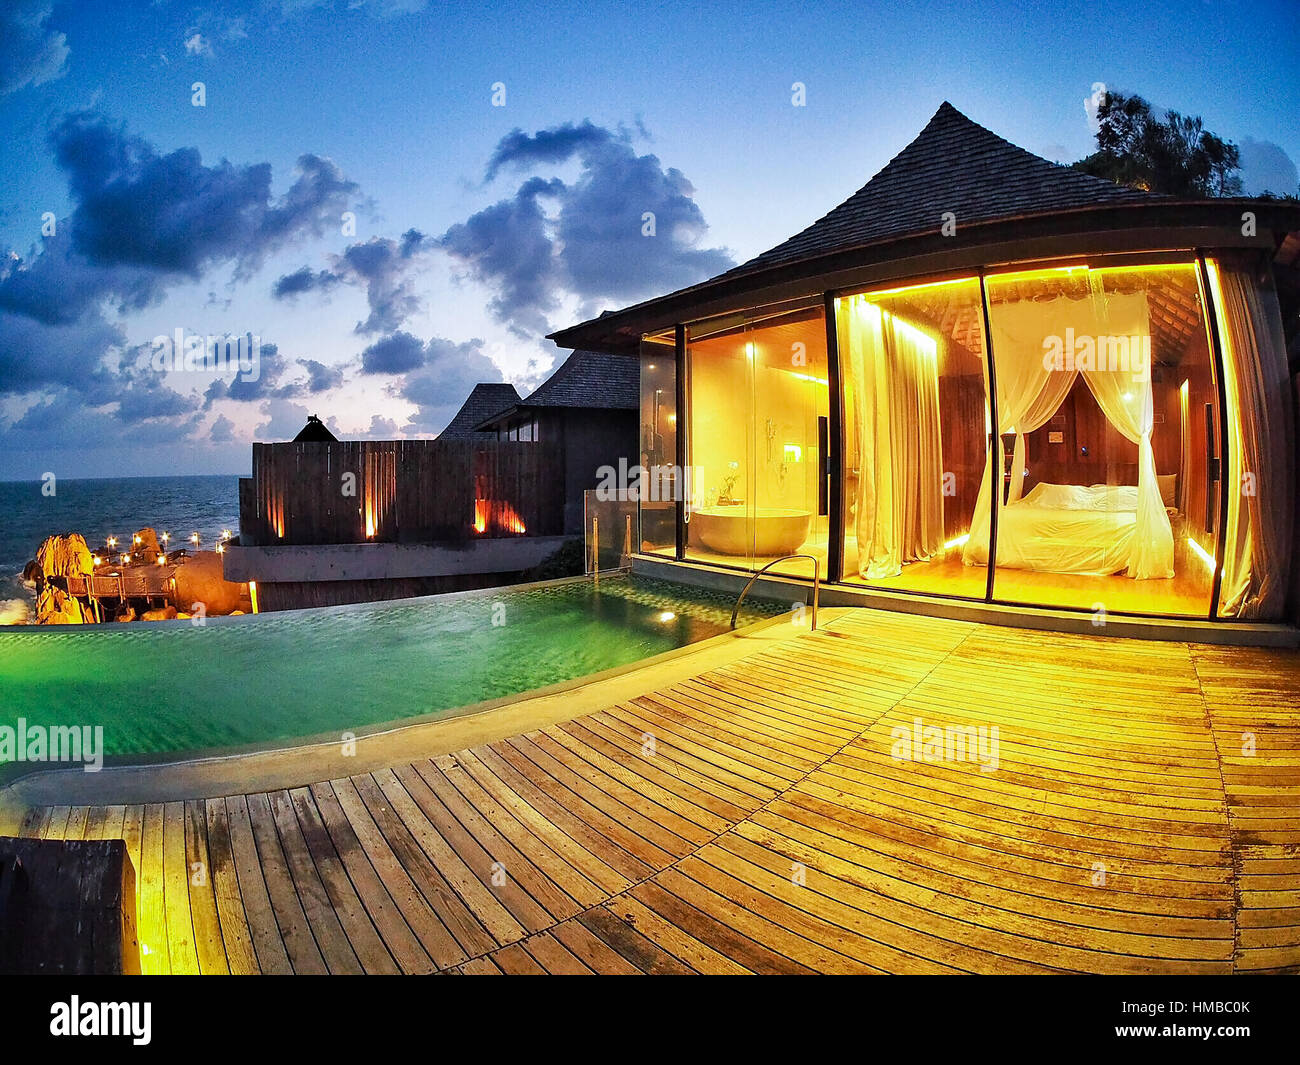 Hut at swimming pool of the luxury hotel stock photos - Hotels in yeovil with swimming pool ...